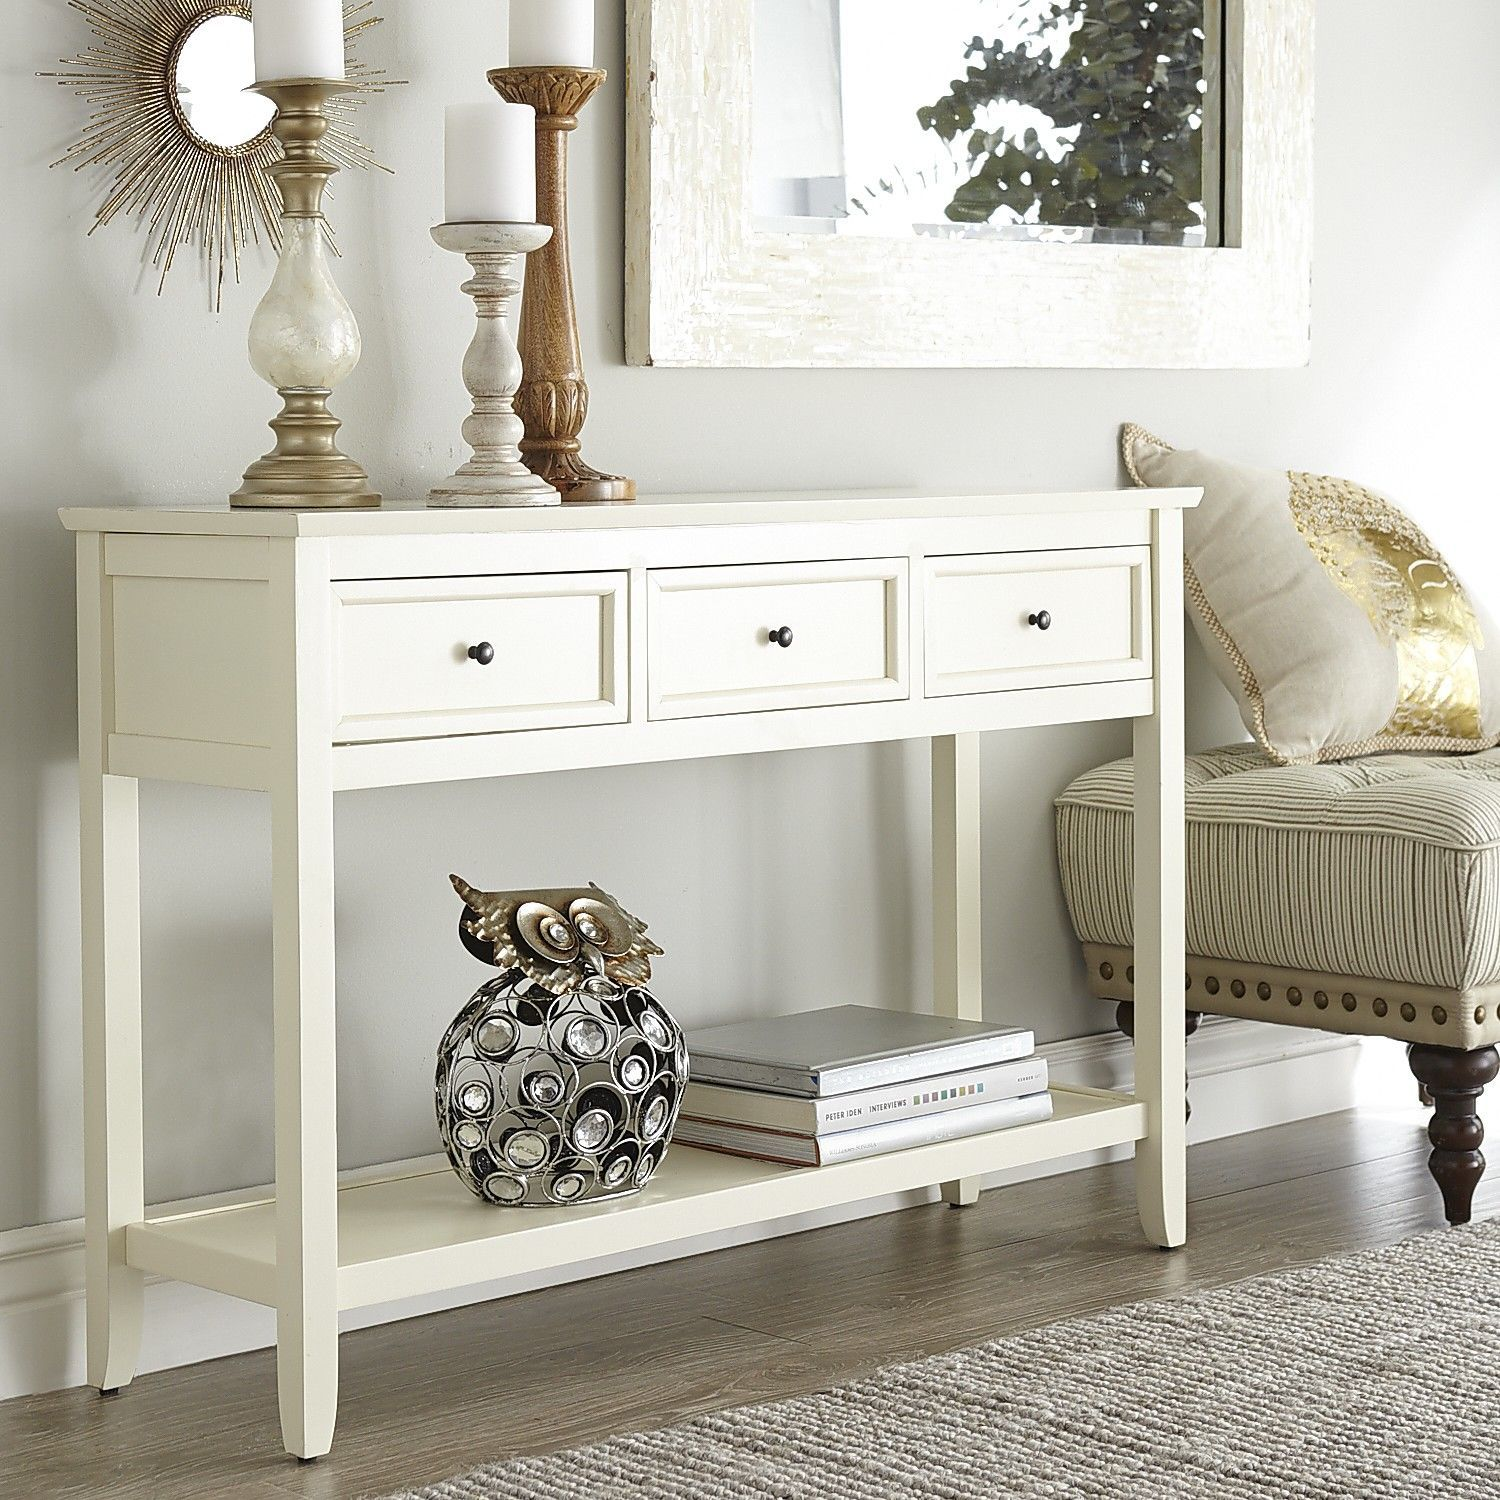 Corner Antique White Console Table Ideas In 2020 White Console Table Entryway Table Decor White Sofa Table